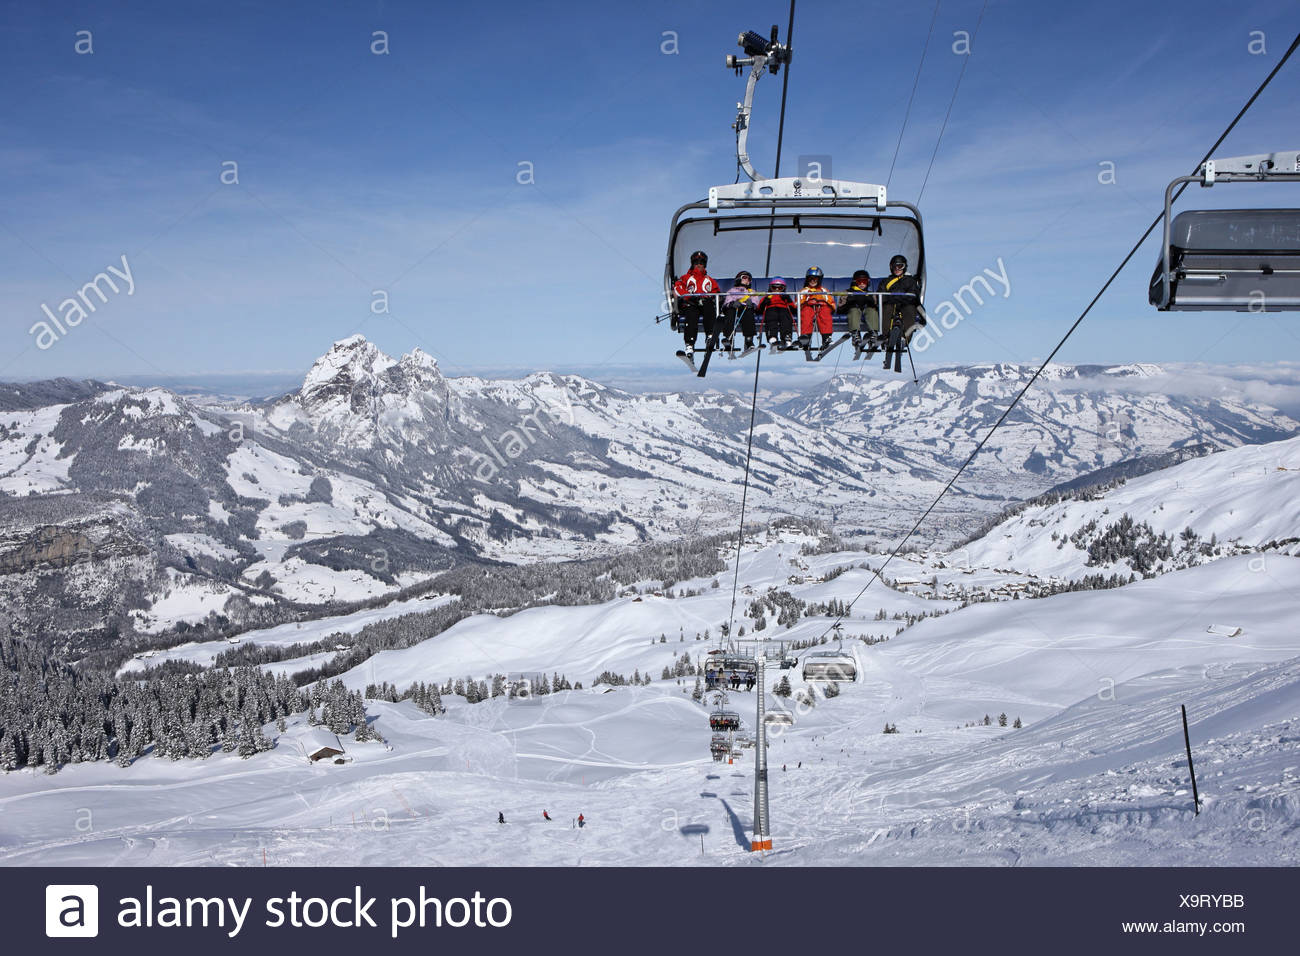 Switzerland swiss myths skiing area armchair elevator chair lift canton Schwyz snow winter ski skiing Carving Carvingski runway - Stock Image